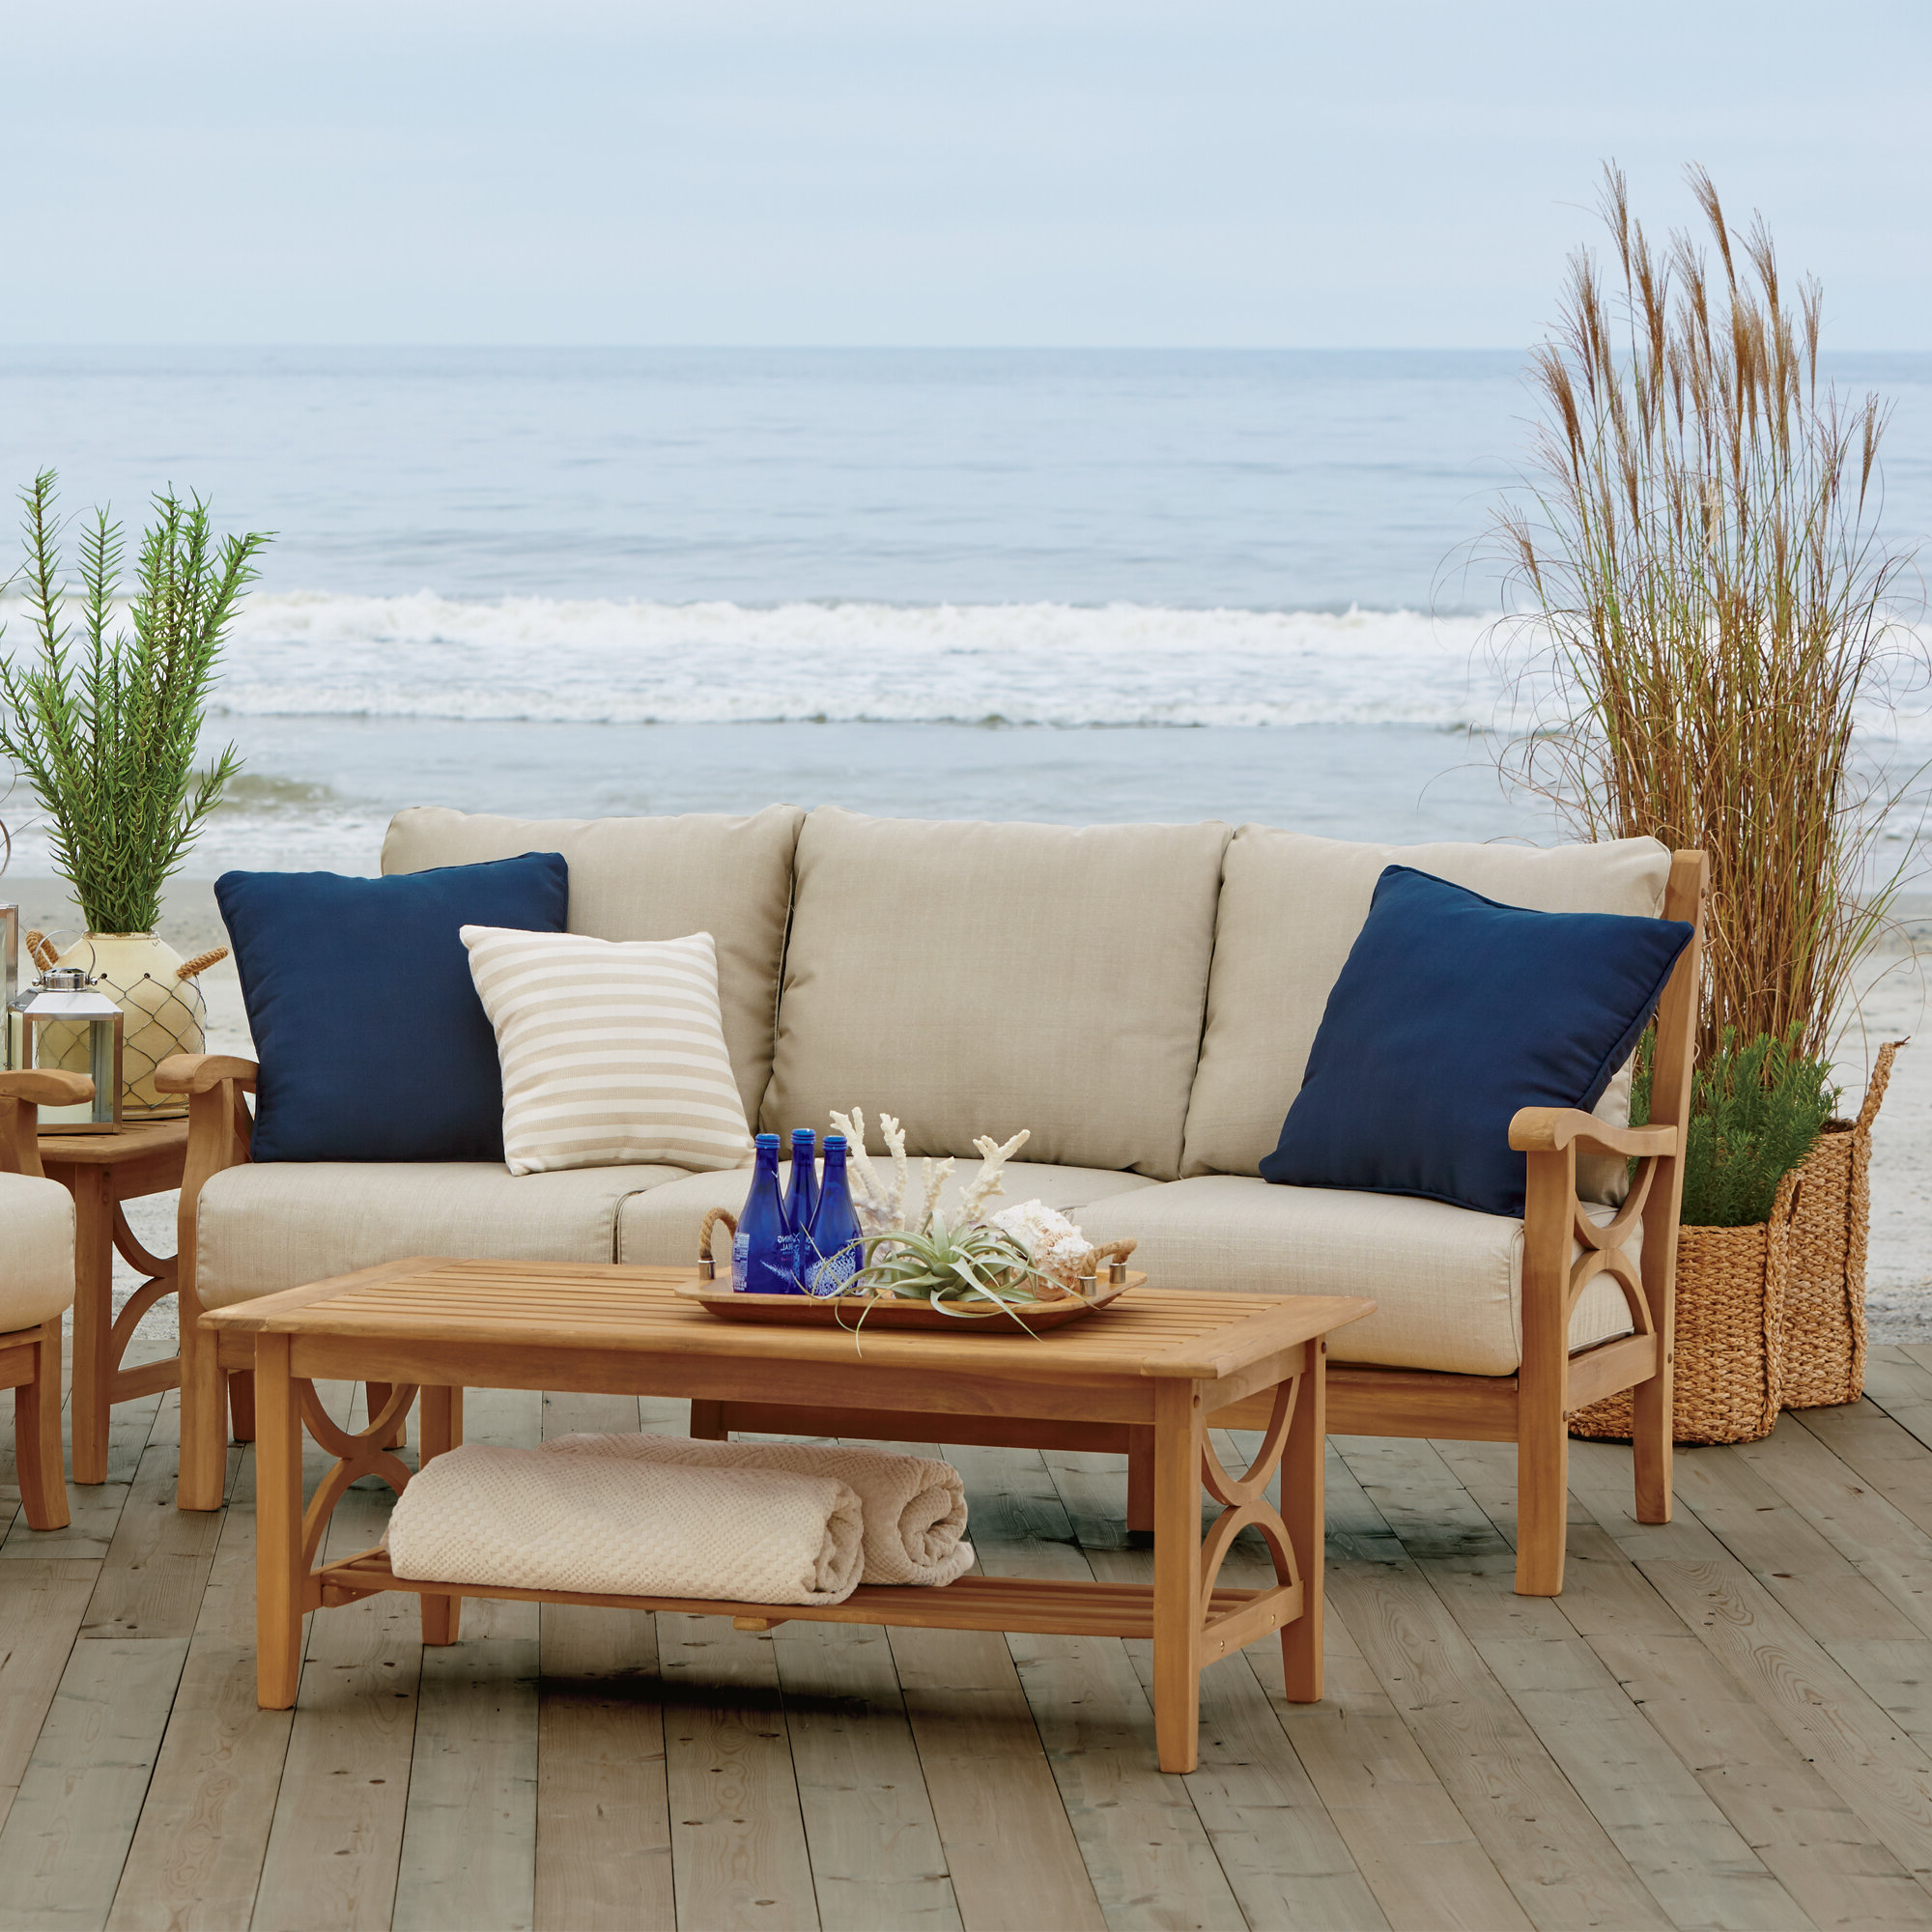 Latest Jamilla Teak Patio Sofas With Cushion Intended For Birch Lane™ Heritage Brunswick Teak Patio Sofa With Cushions (View 5 of 25)